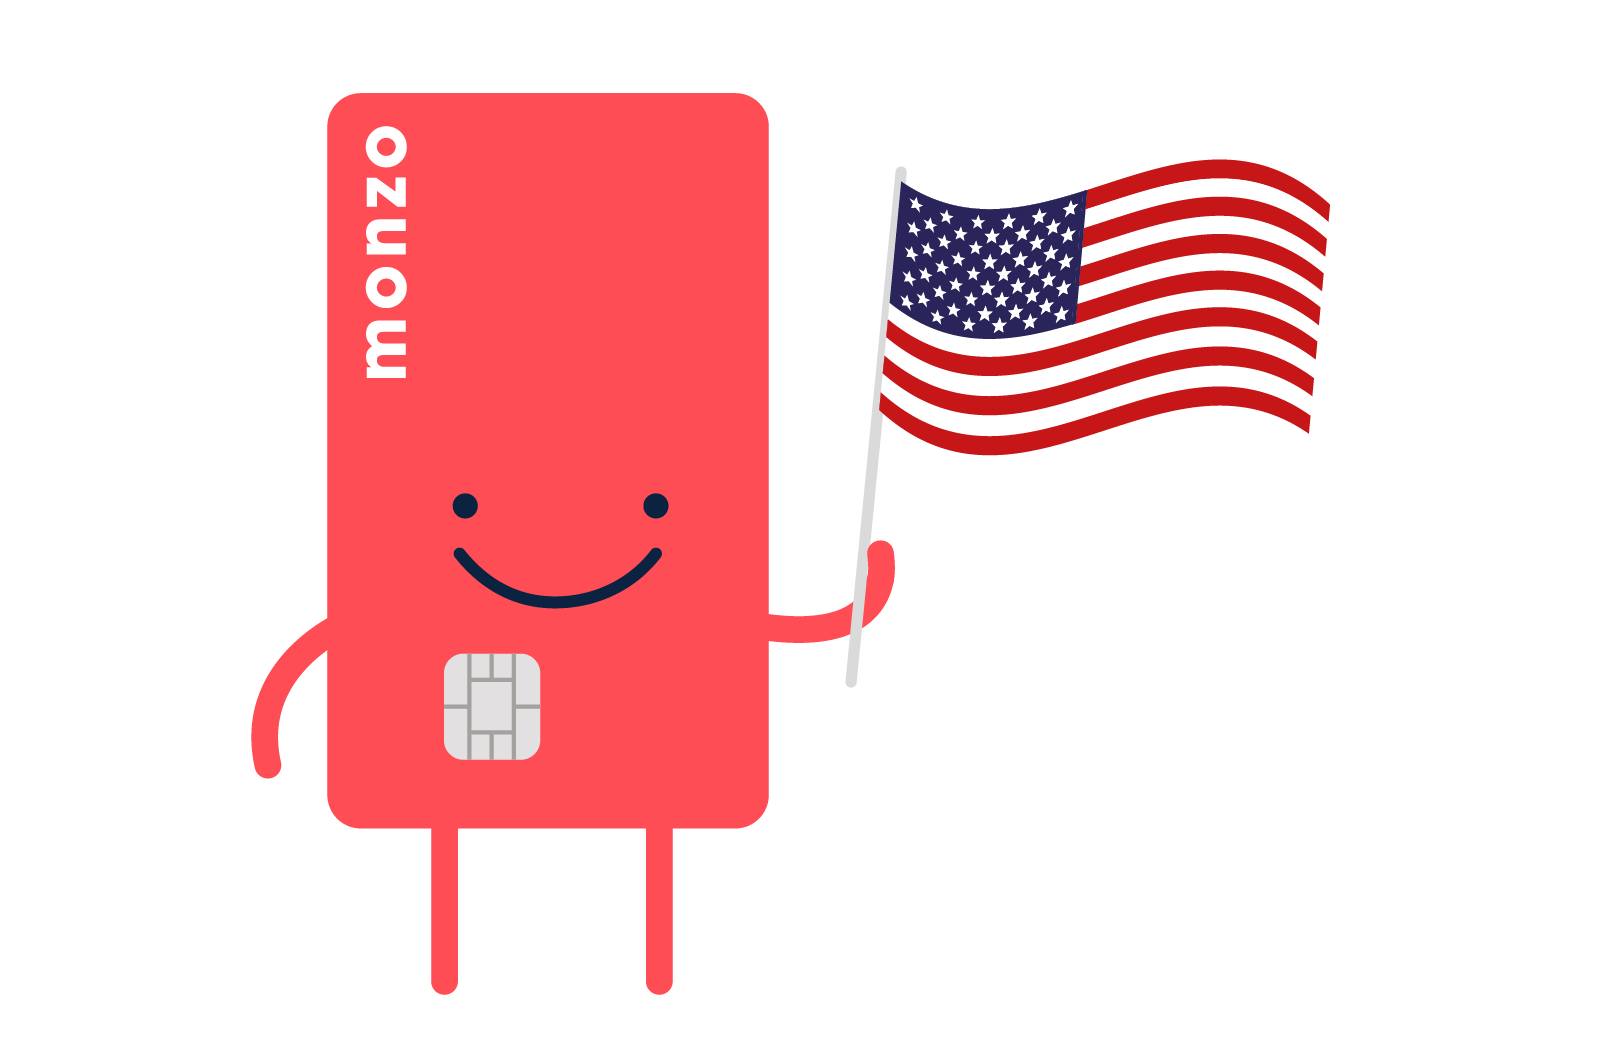 Illustration of Hot Chip character holding an American flag